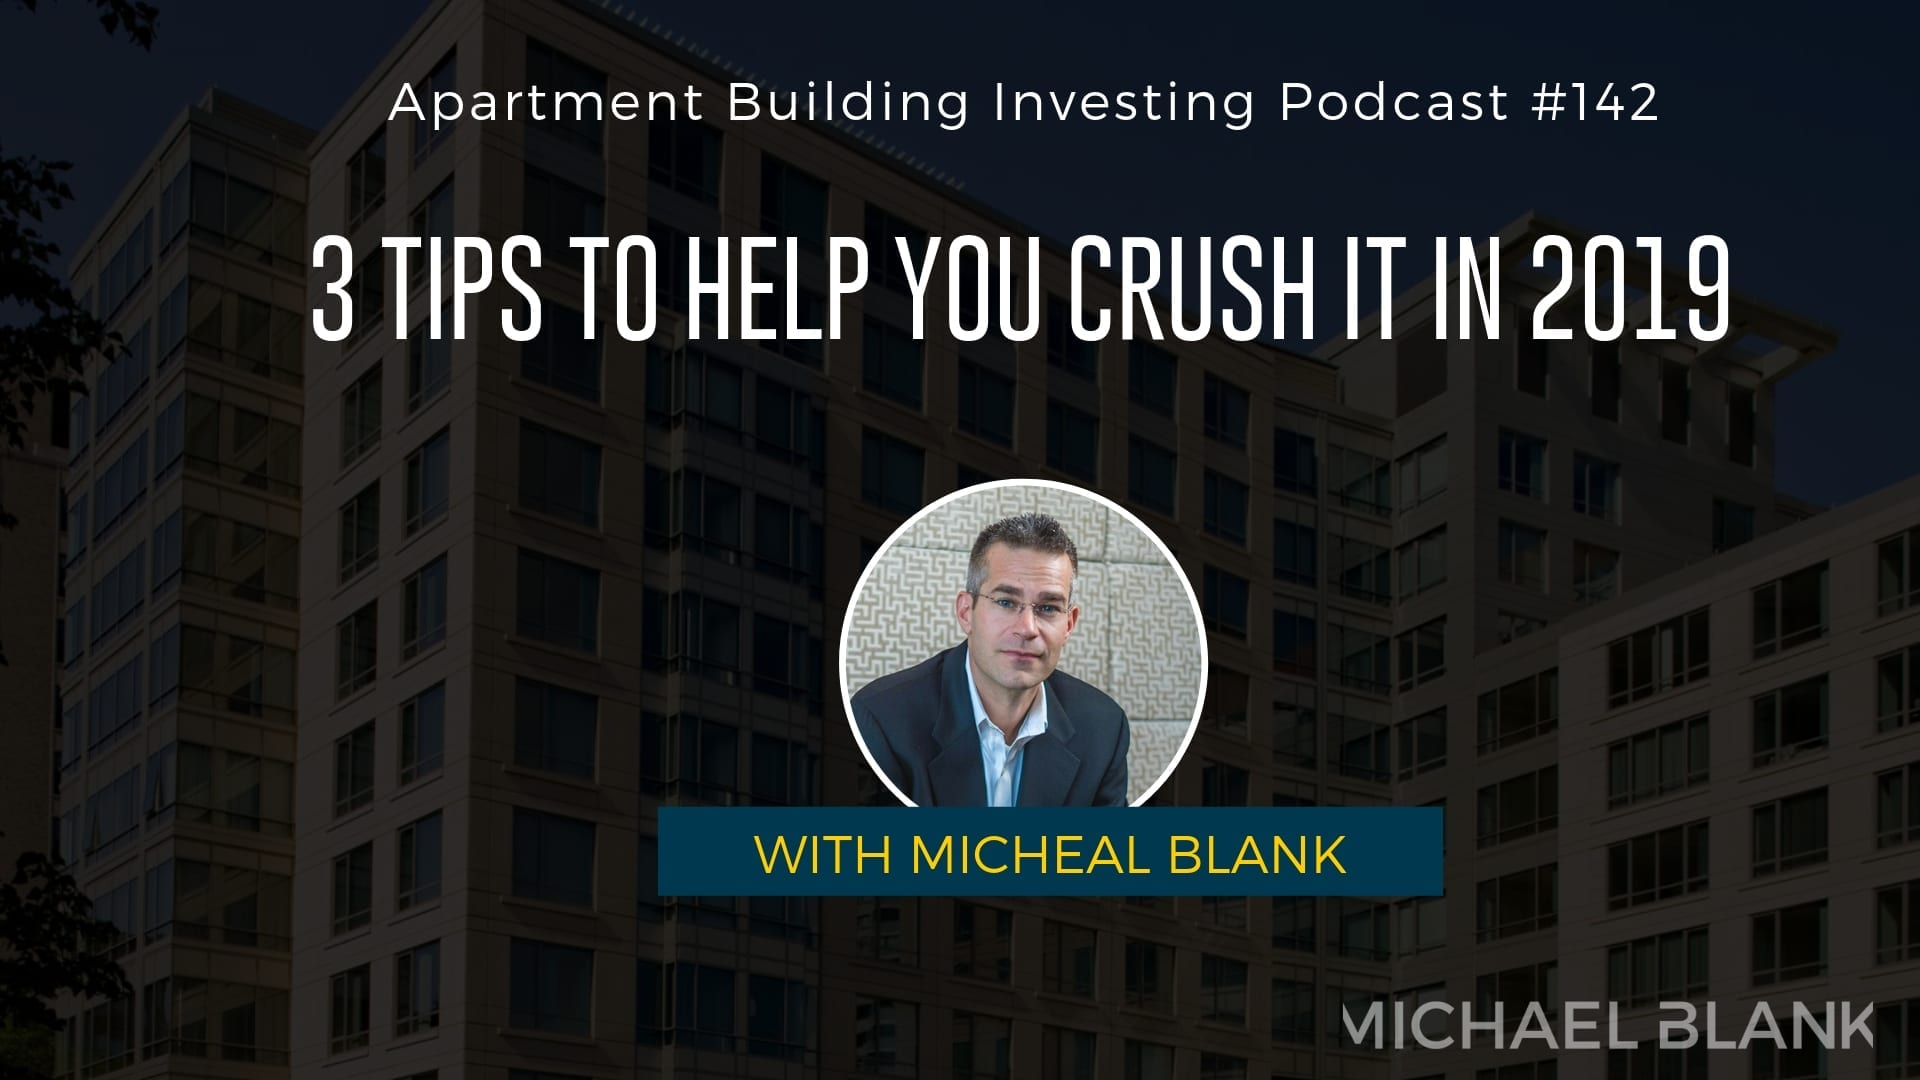 MB 142: 3 Tips to Help You Crush It in 2019 – With Michael Blank